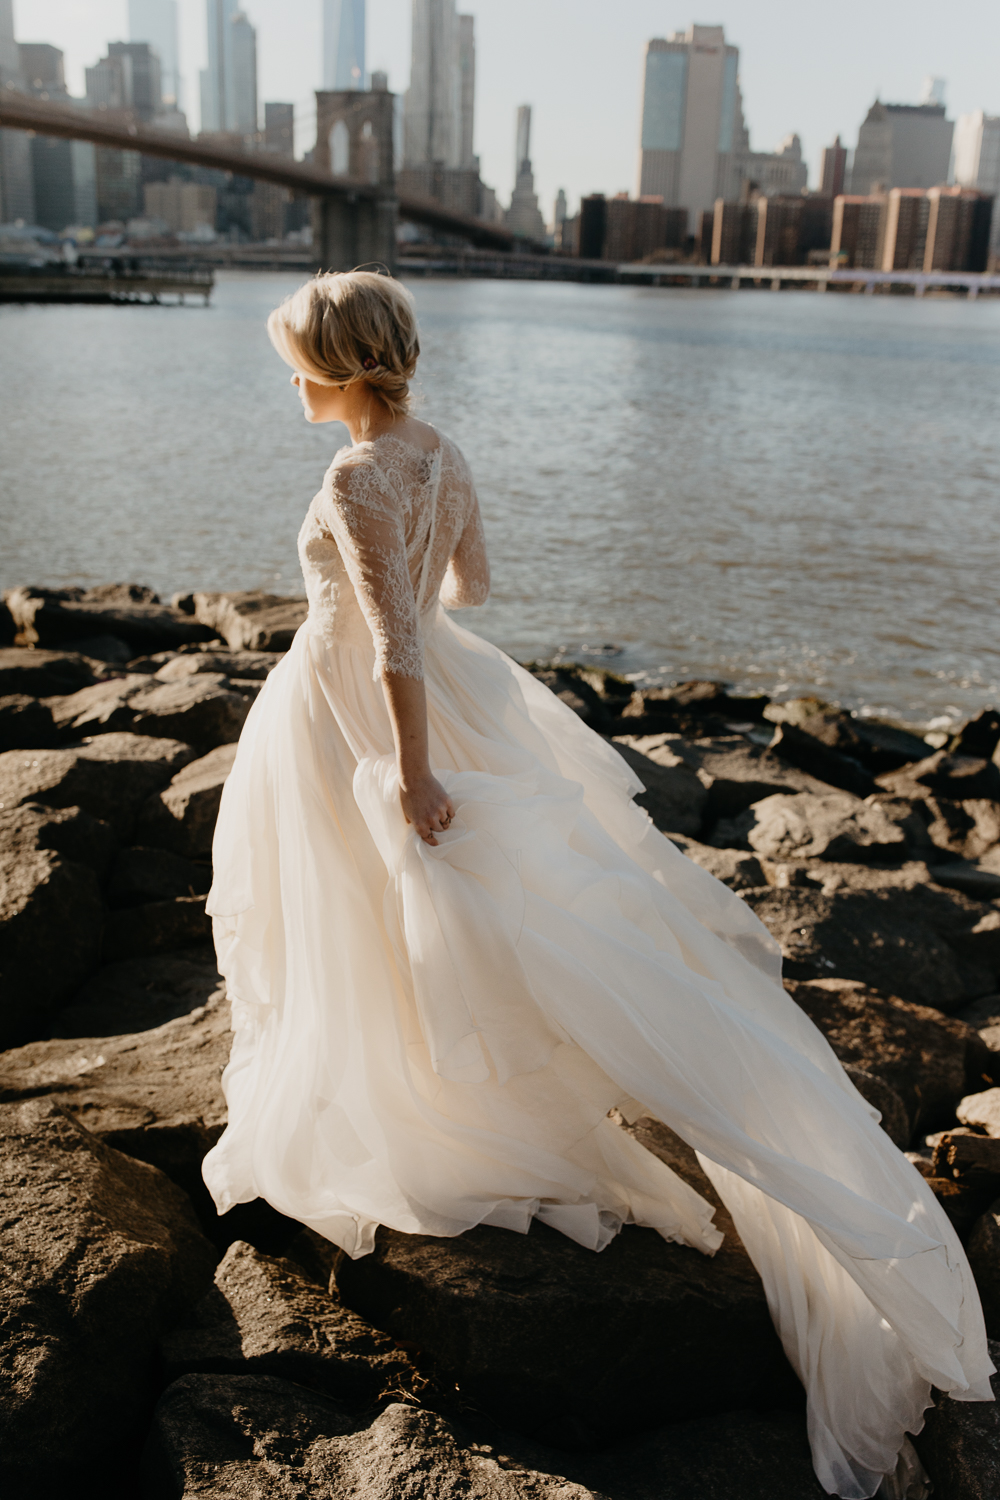 Brooklyn_wedding-1-72-1.jpg